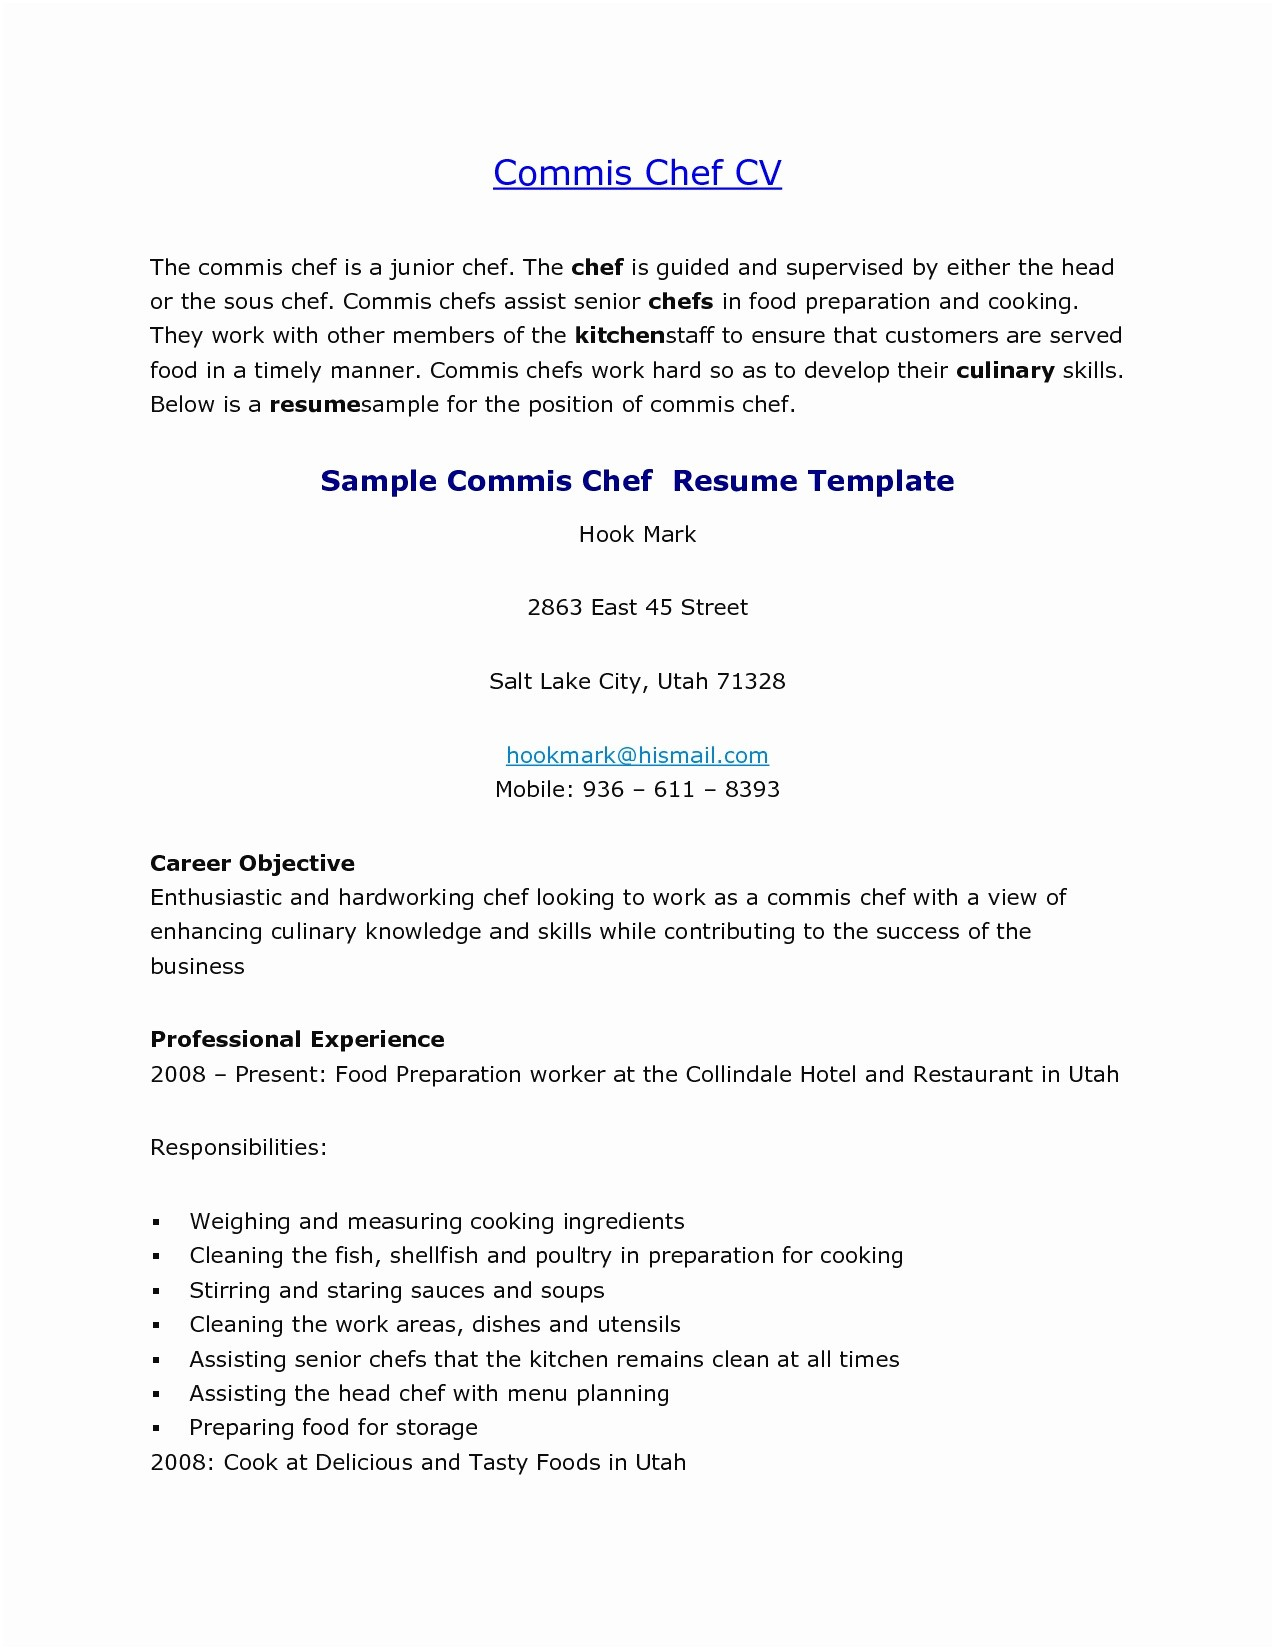 Culinary Resume Template - Sample Chef Resume